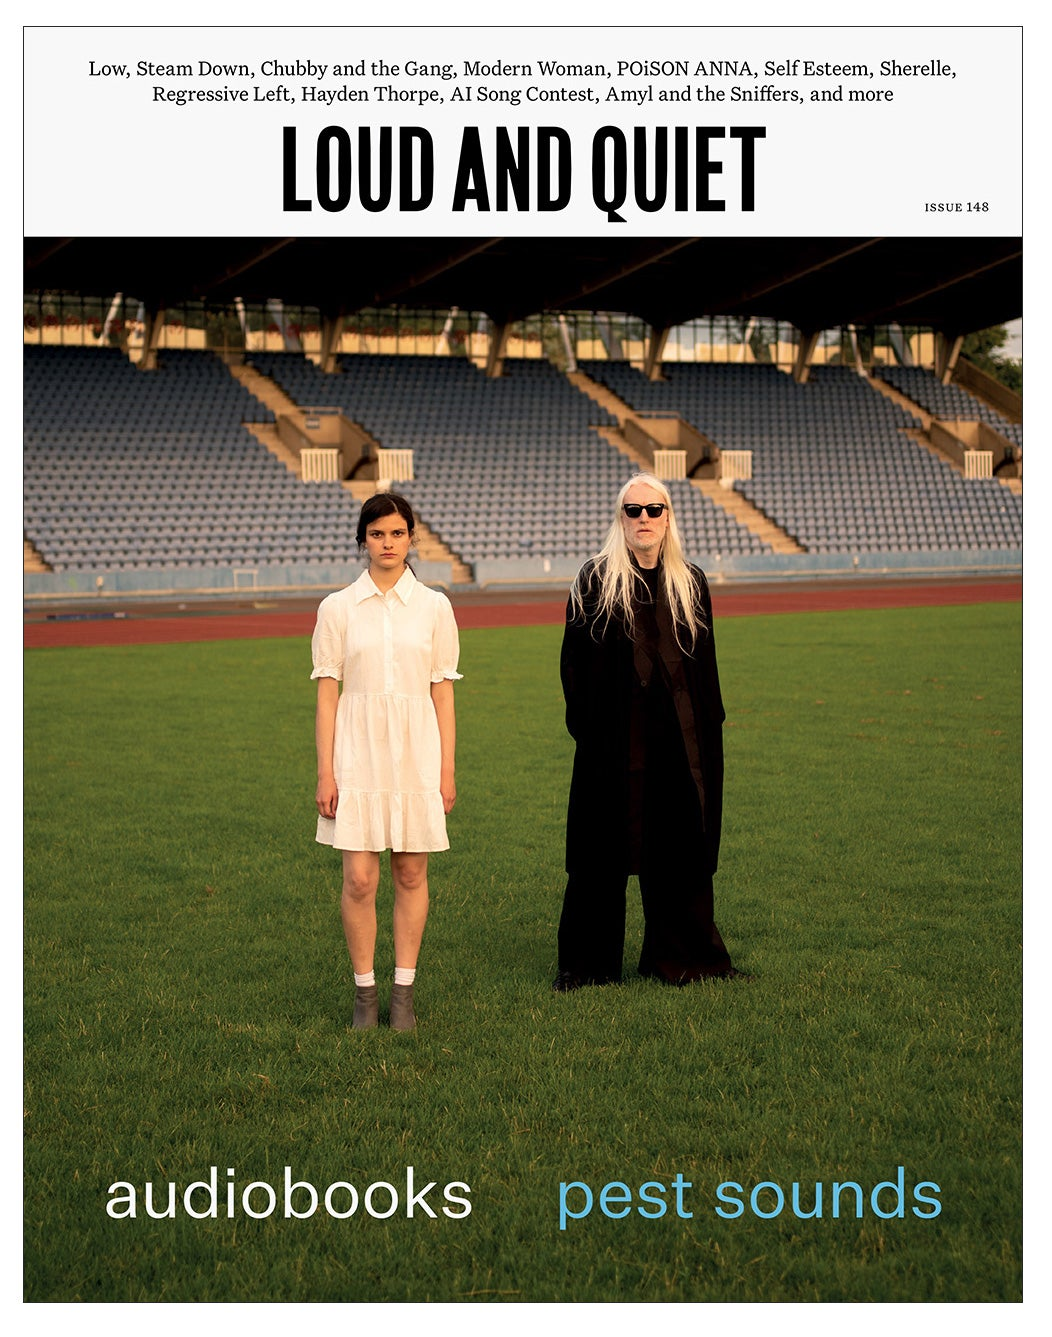 Image of Loud And Quiet issue 148